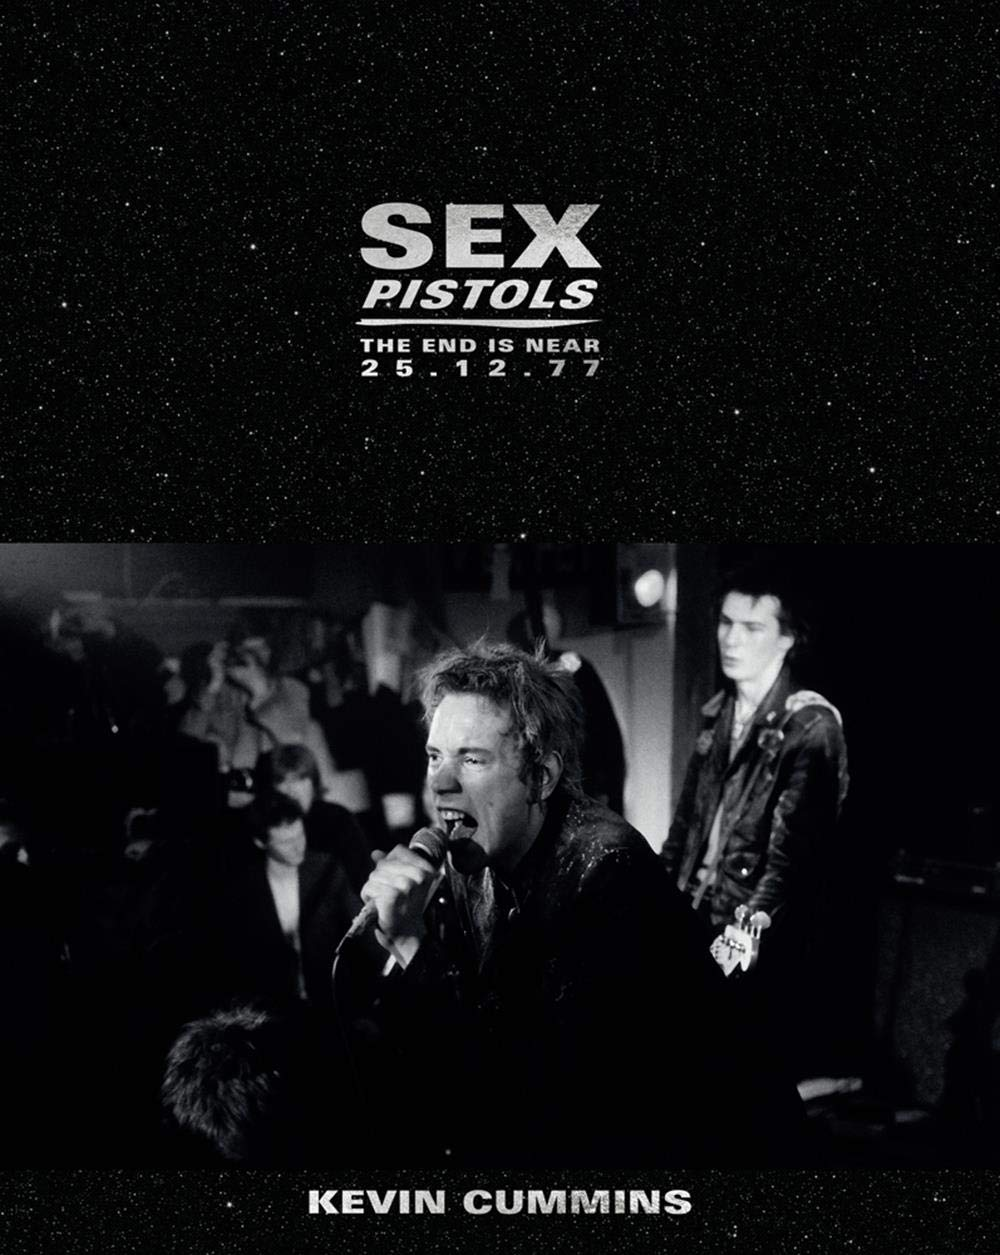 News Littéraires – Kevin Cummins – Sex Pistols: The End is Near 25.12.77